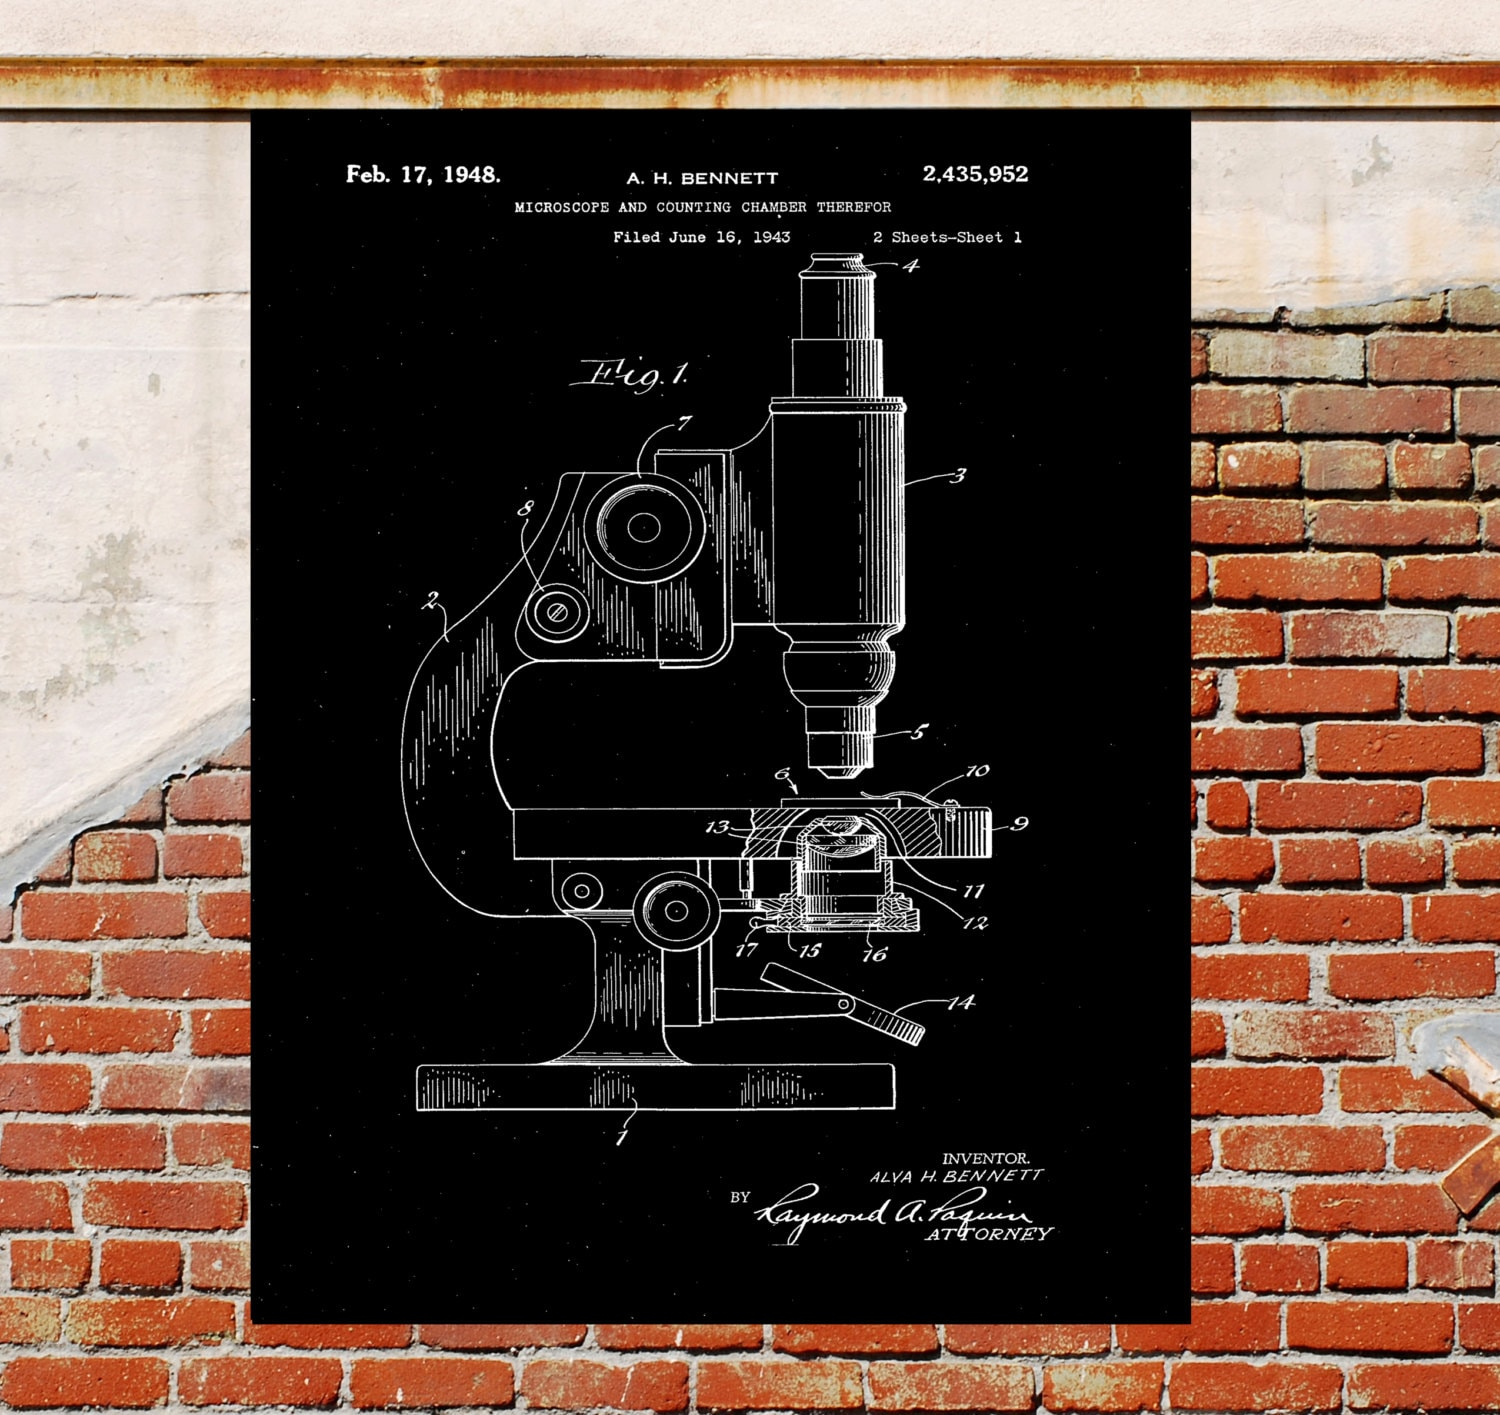 Vintage microscope Microscope Medical equipment Art Black and